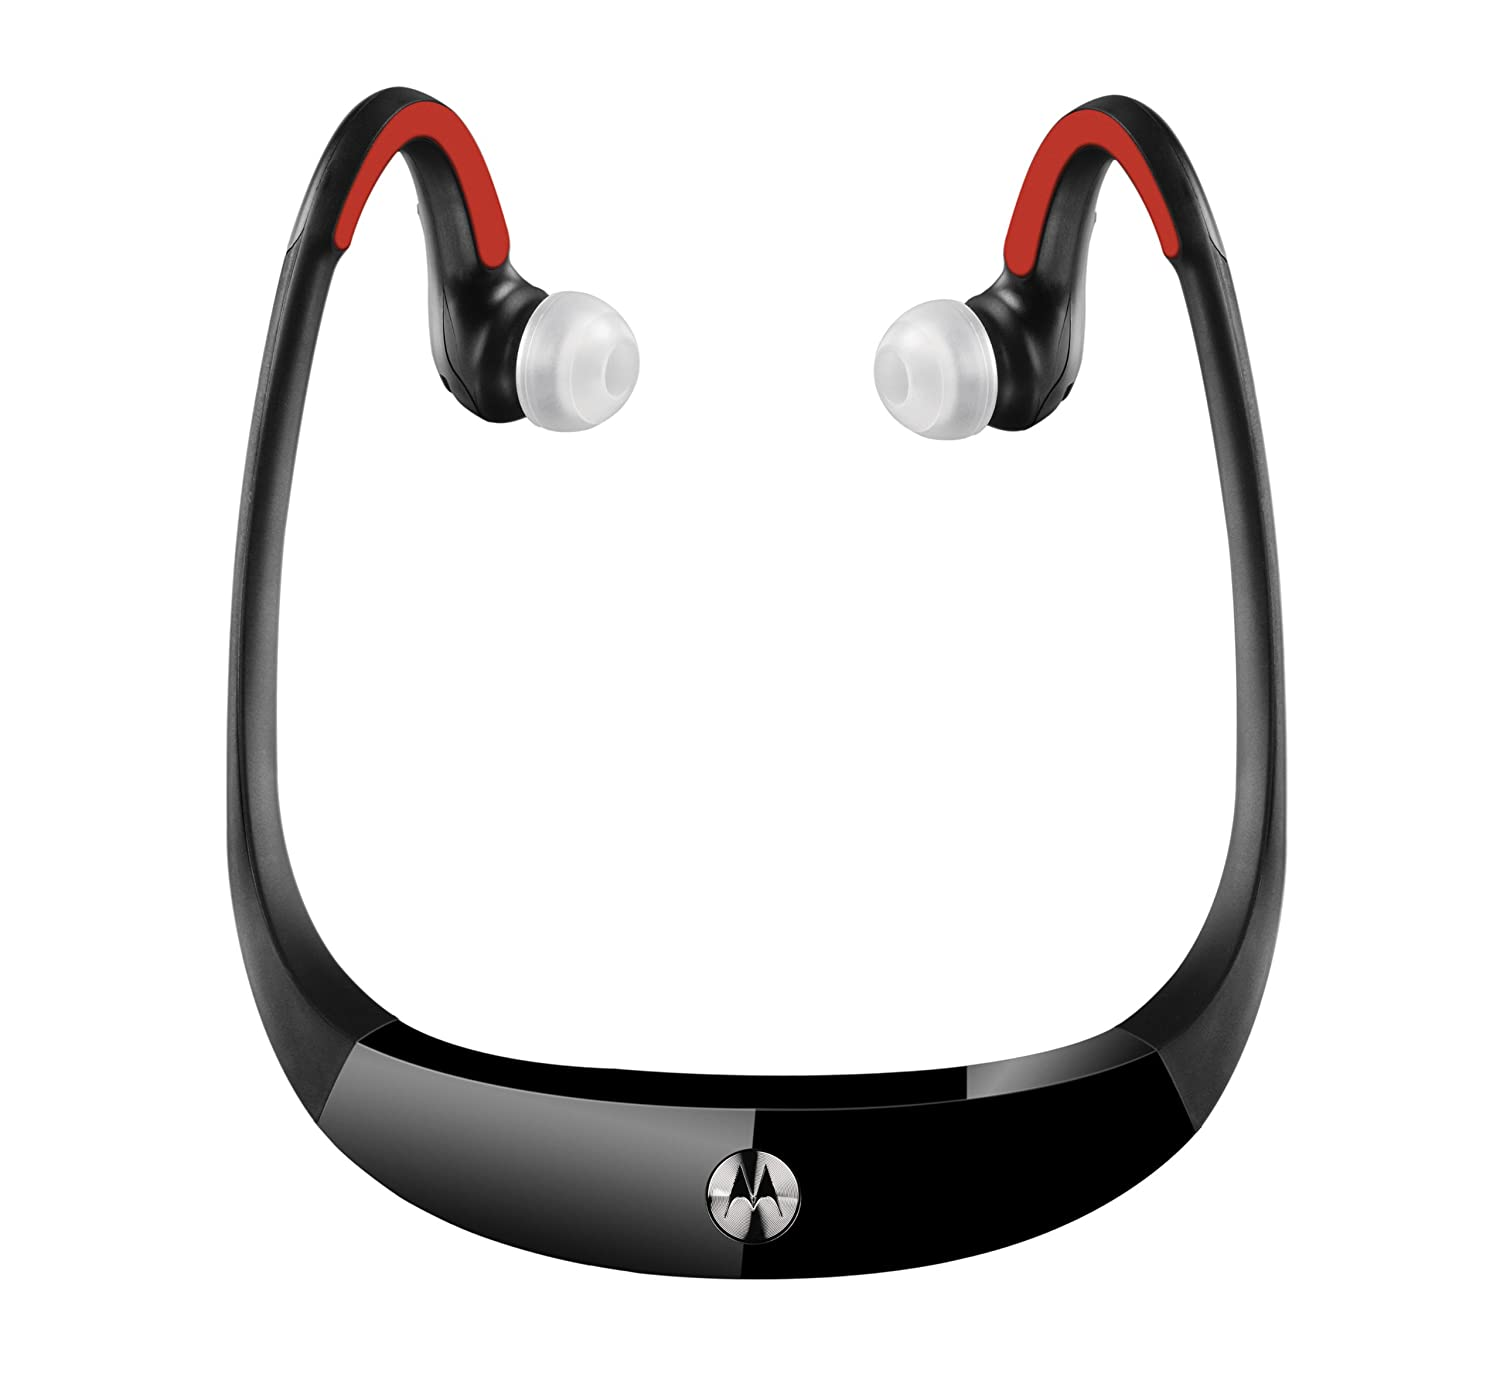 motorola s10 hd bluetooth stereo headset red black amazon in rh amazon in Motorola Earpiece Bluetooth Pairing Motorola H350 Bluetooth Instruction Manual